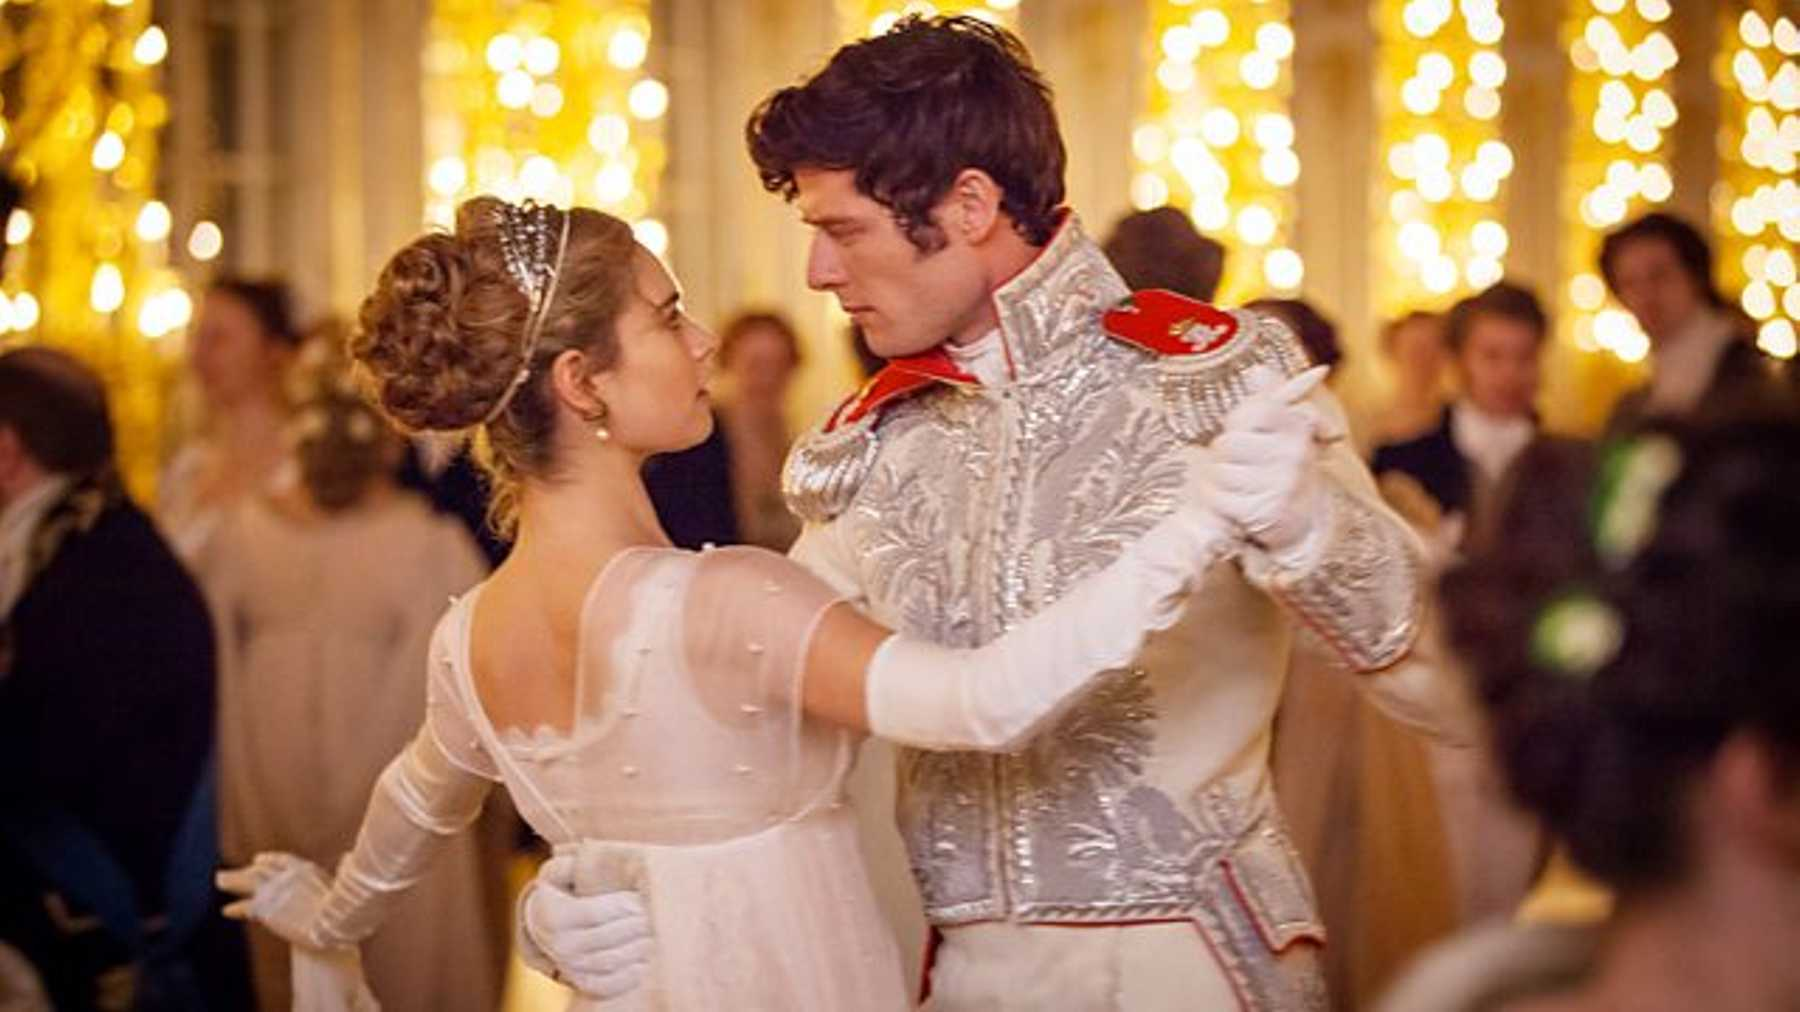 ec541ee457d5d6 11 Brilliant Period Dramas To Stream On Netflix